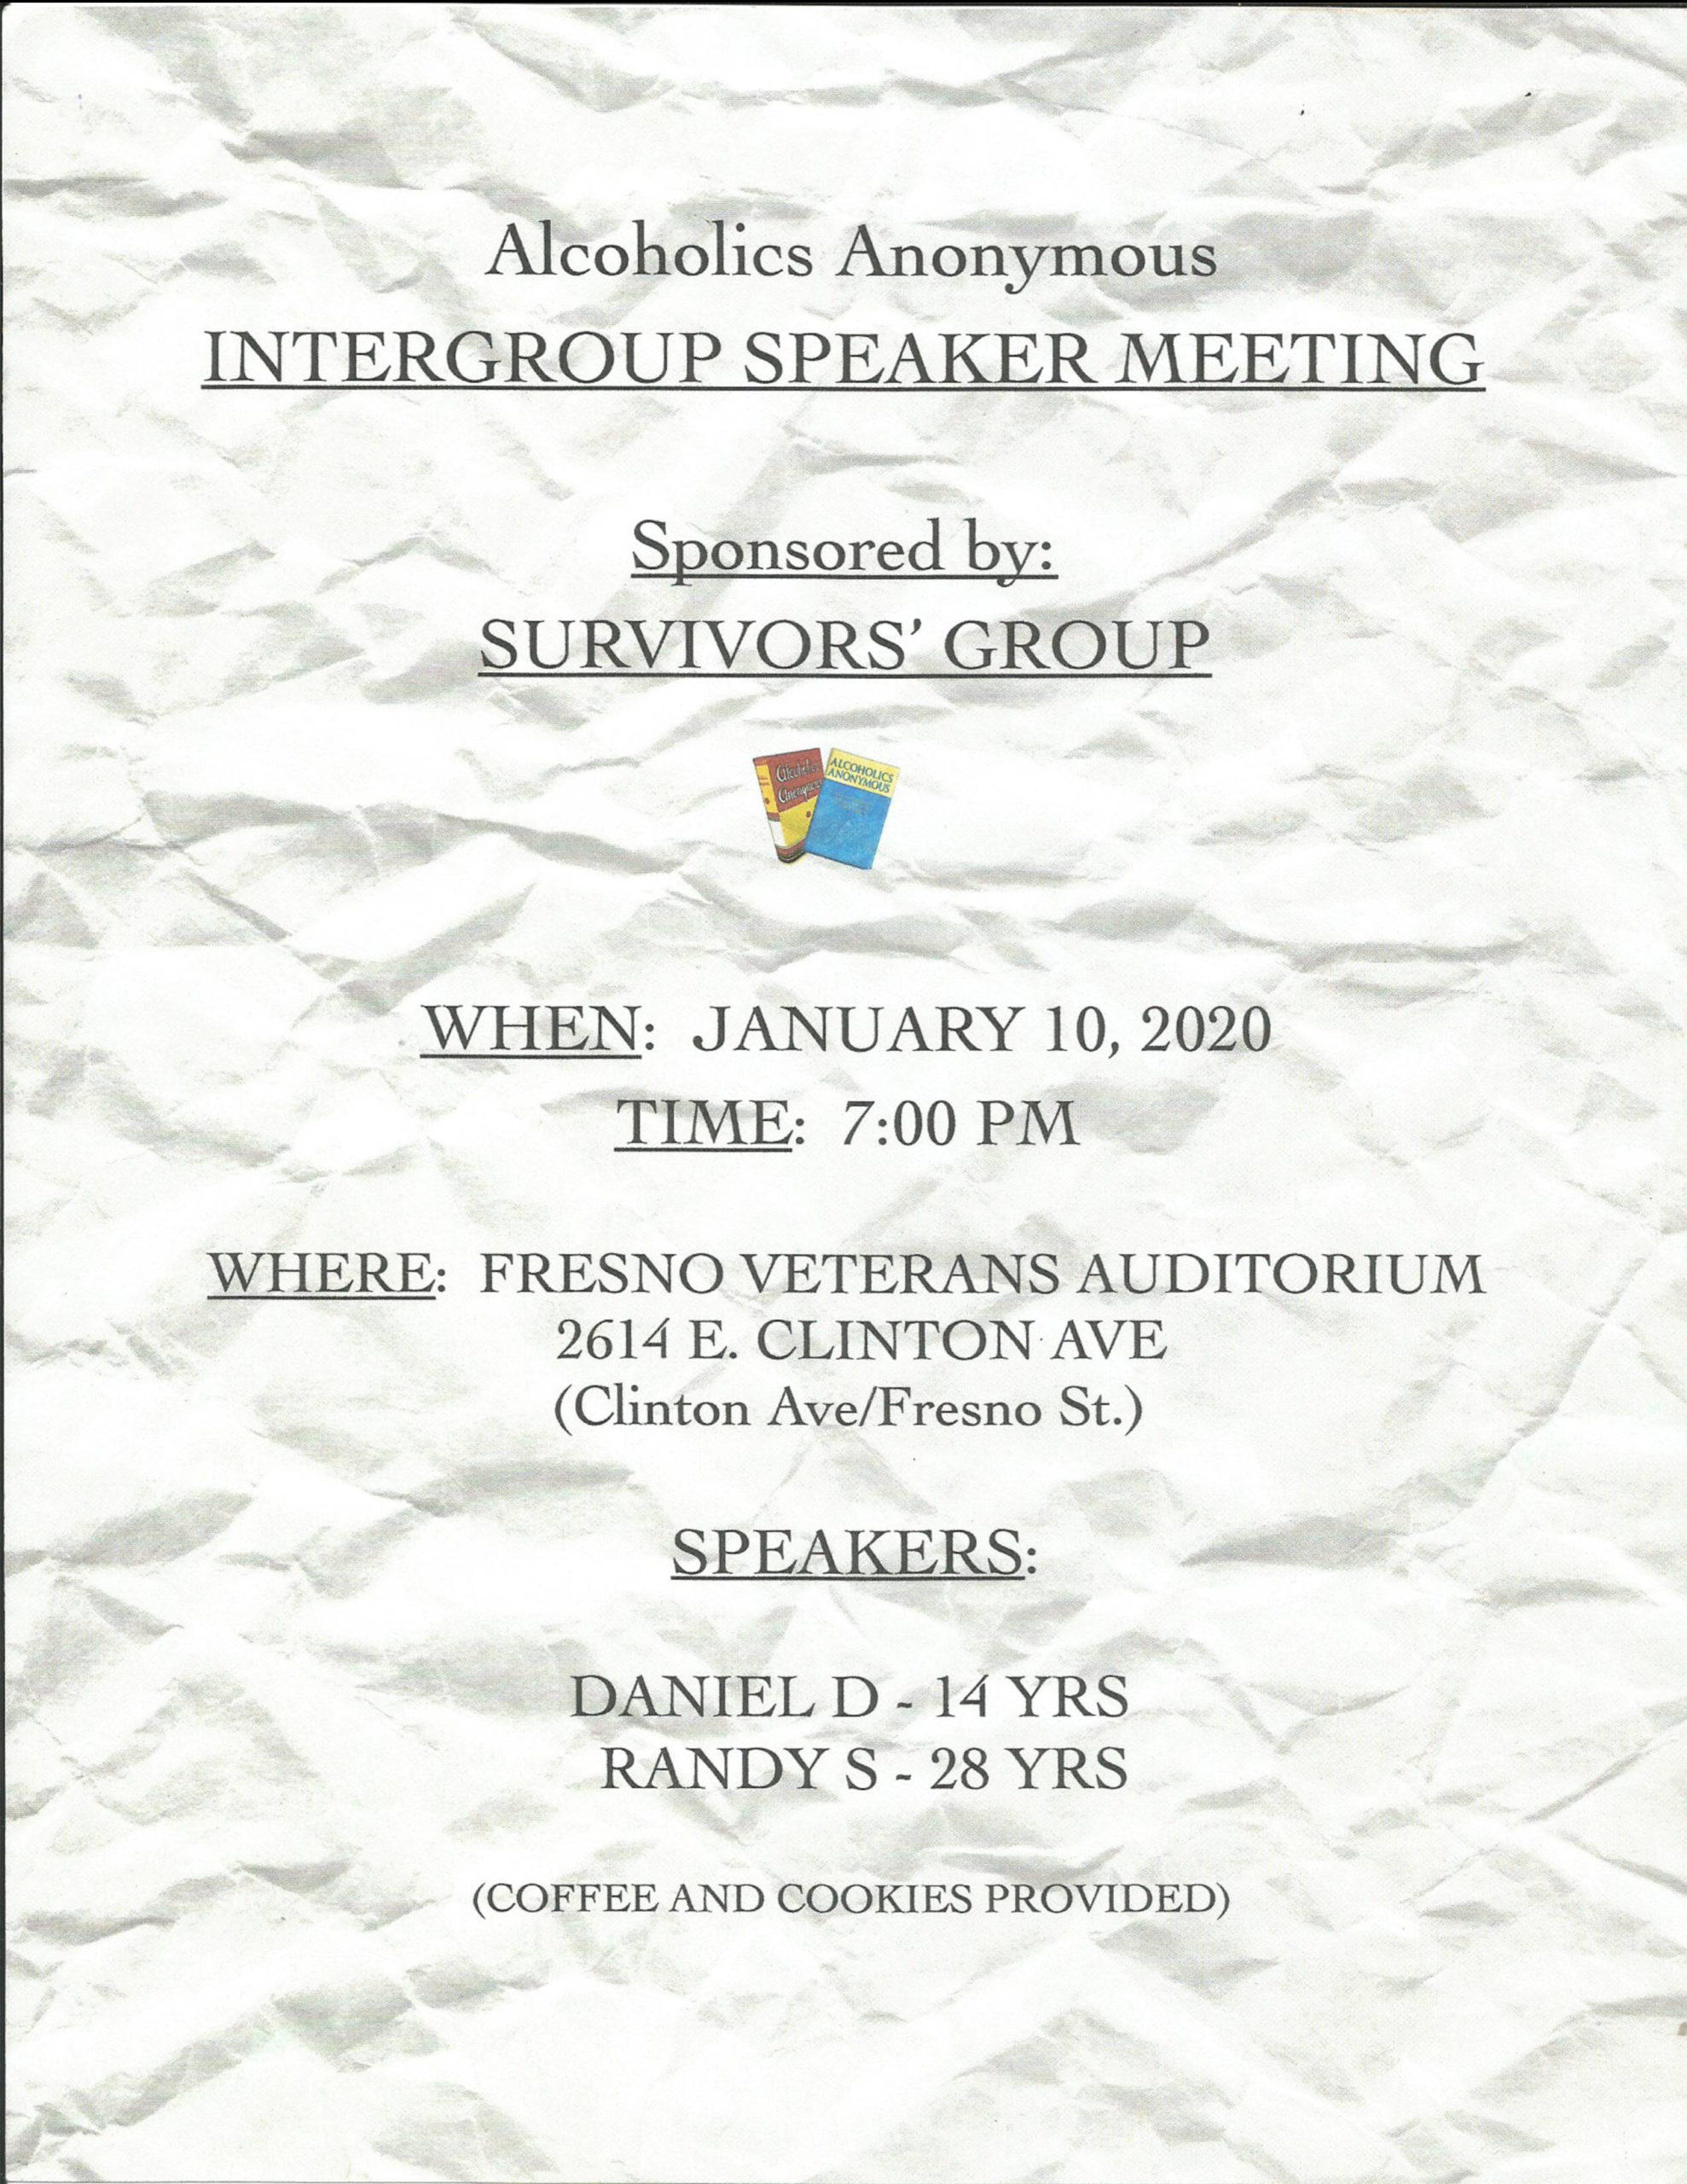 Intergroup Speaker Meeting By Survivors Group